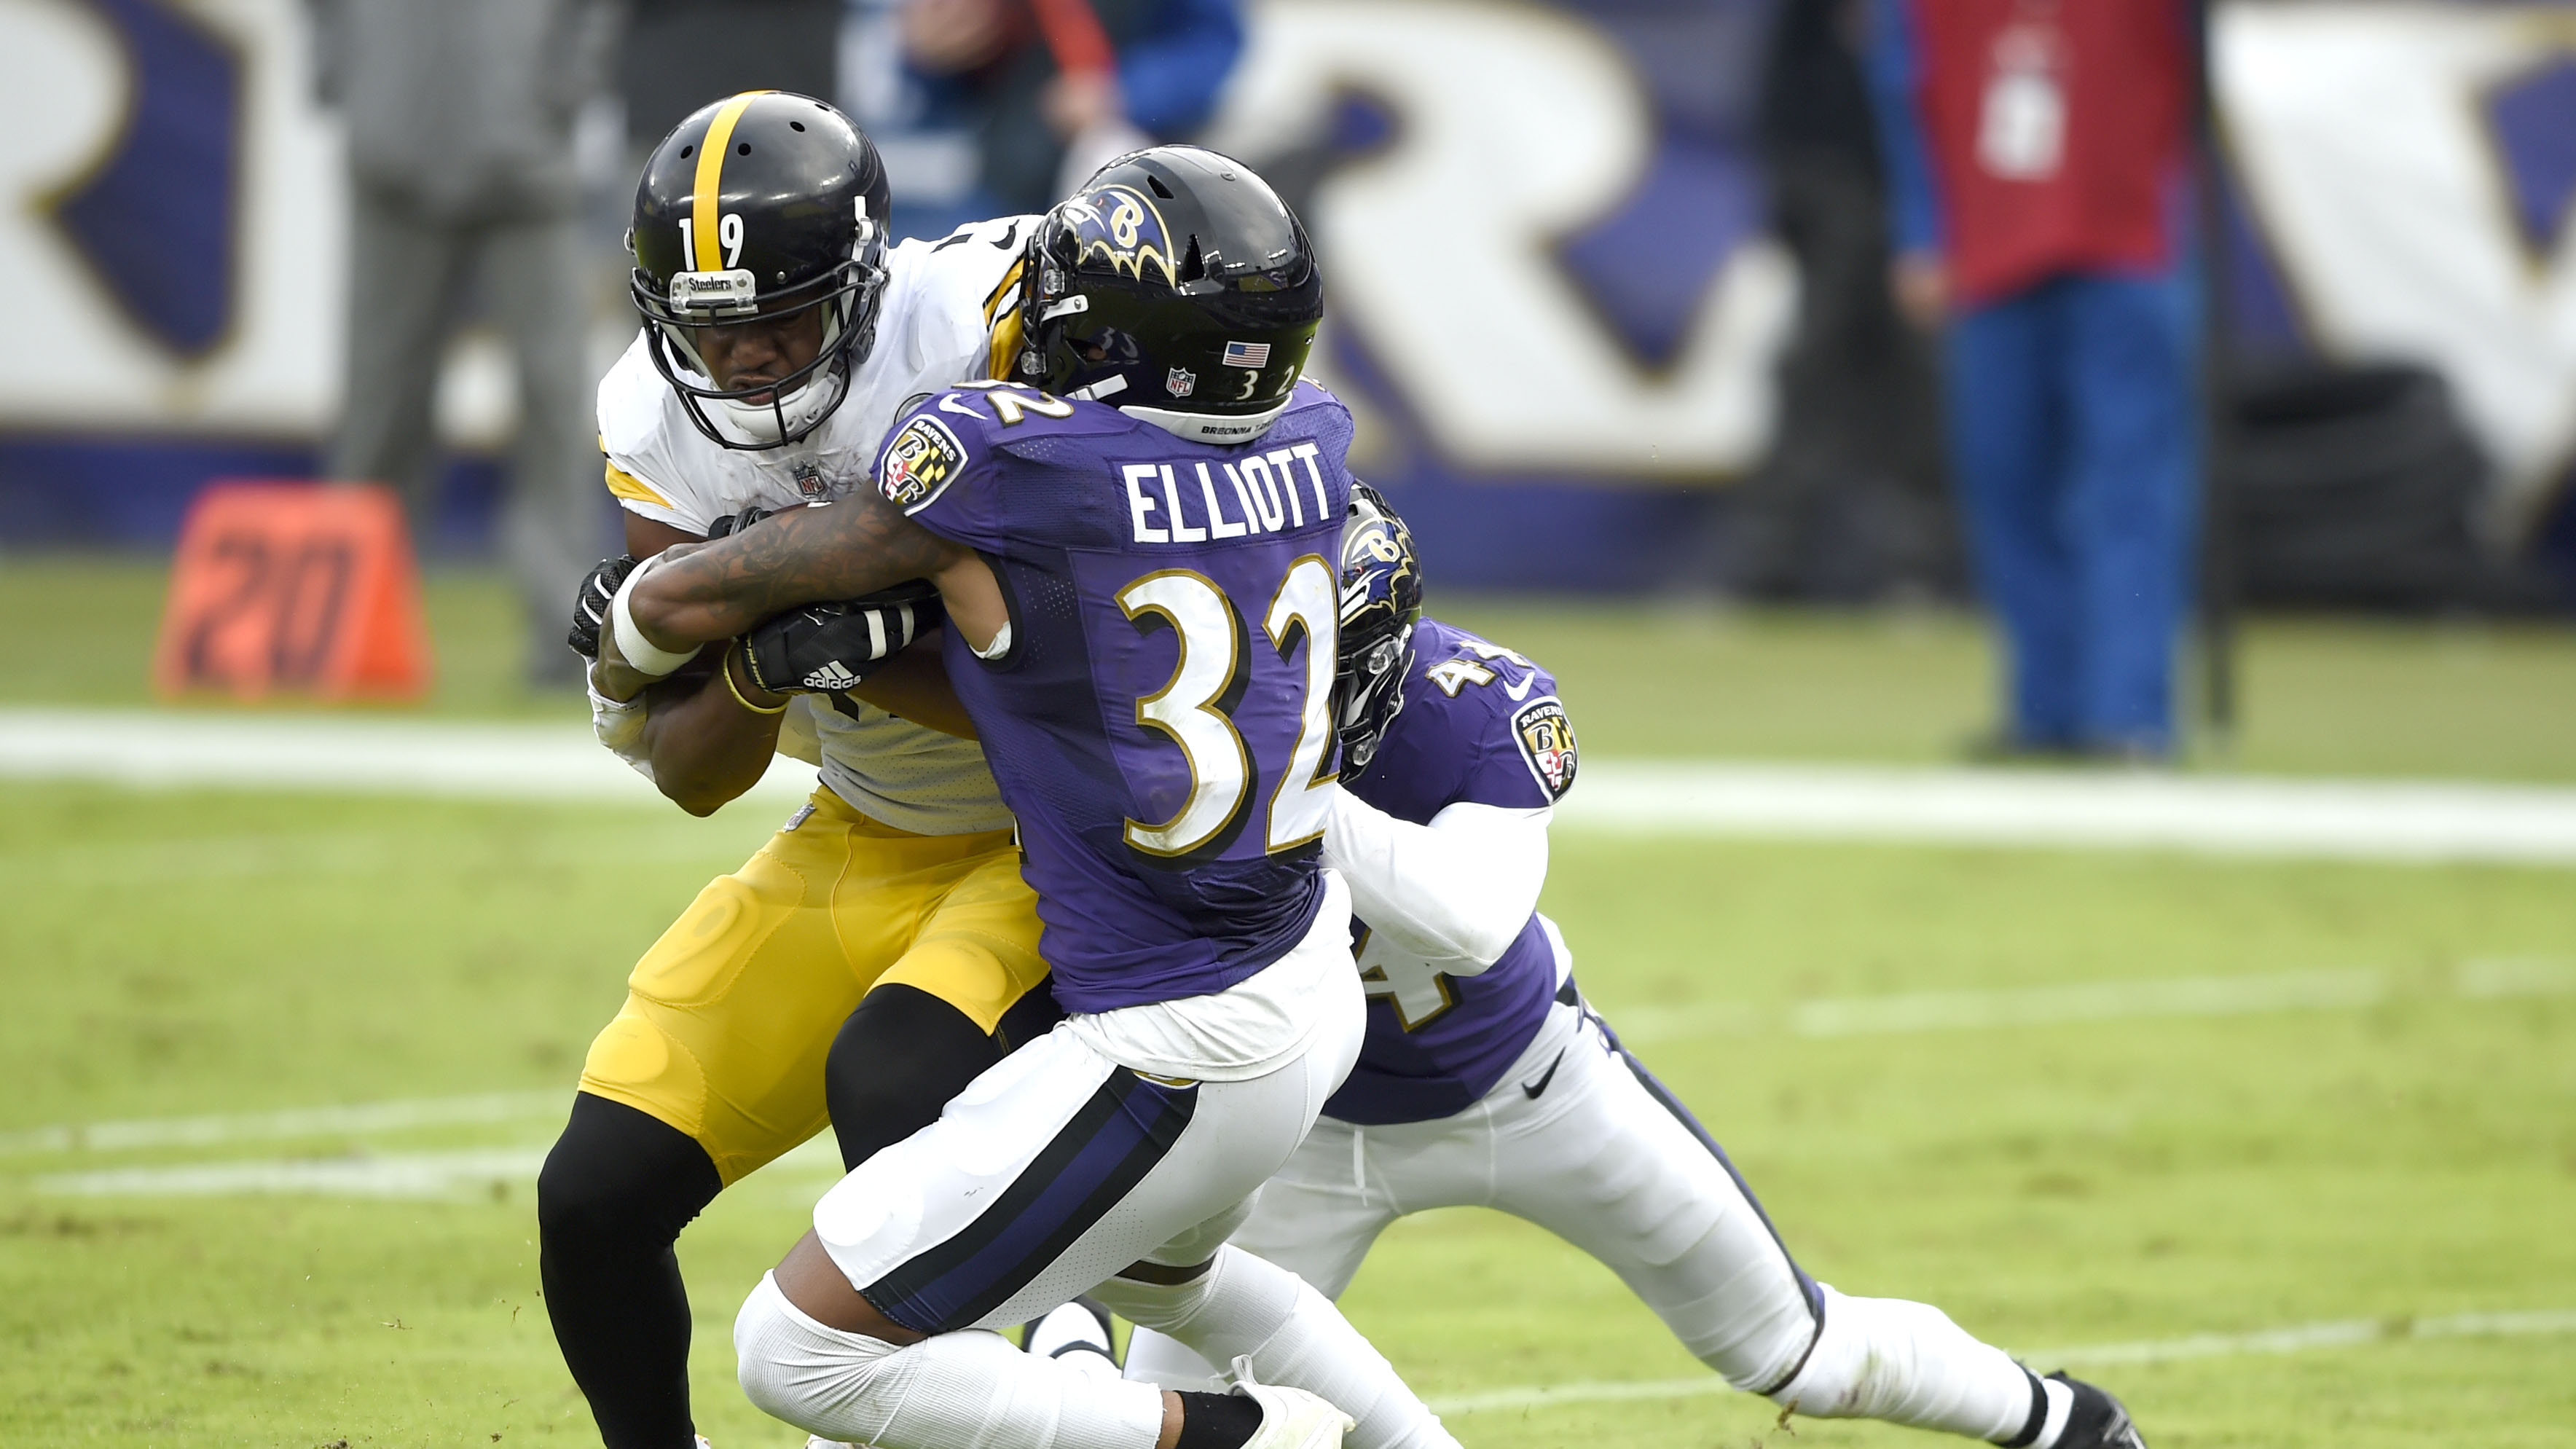 Ravens-Steelers postponed to Wednesday: report